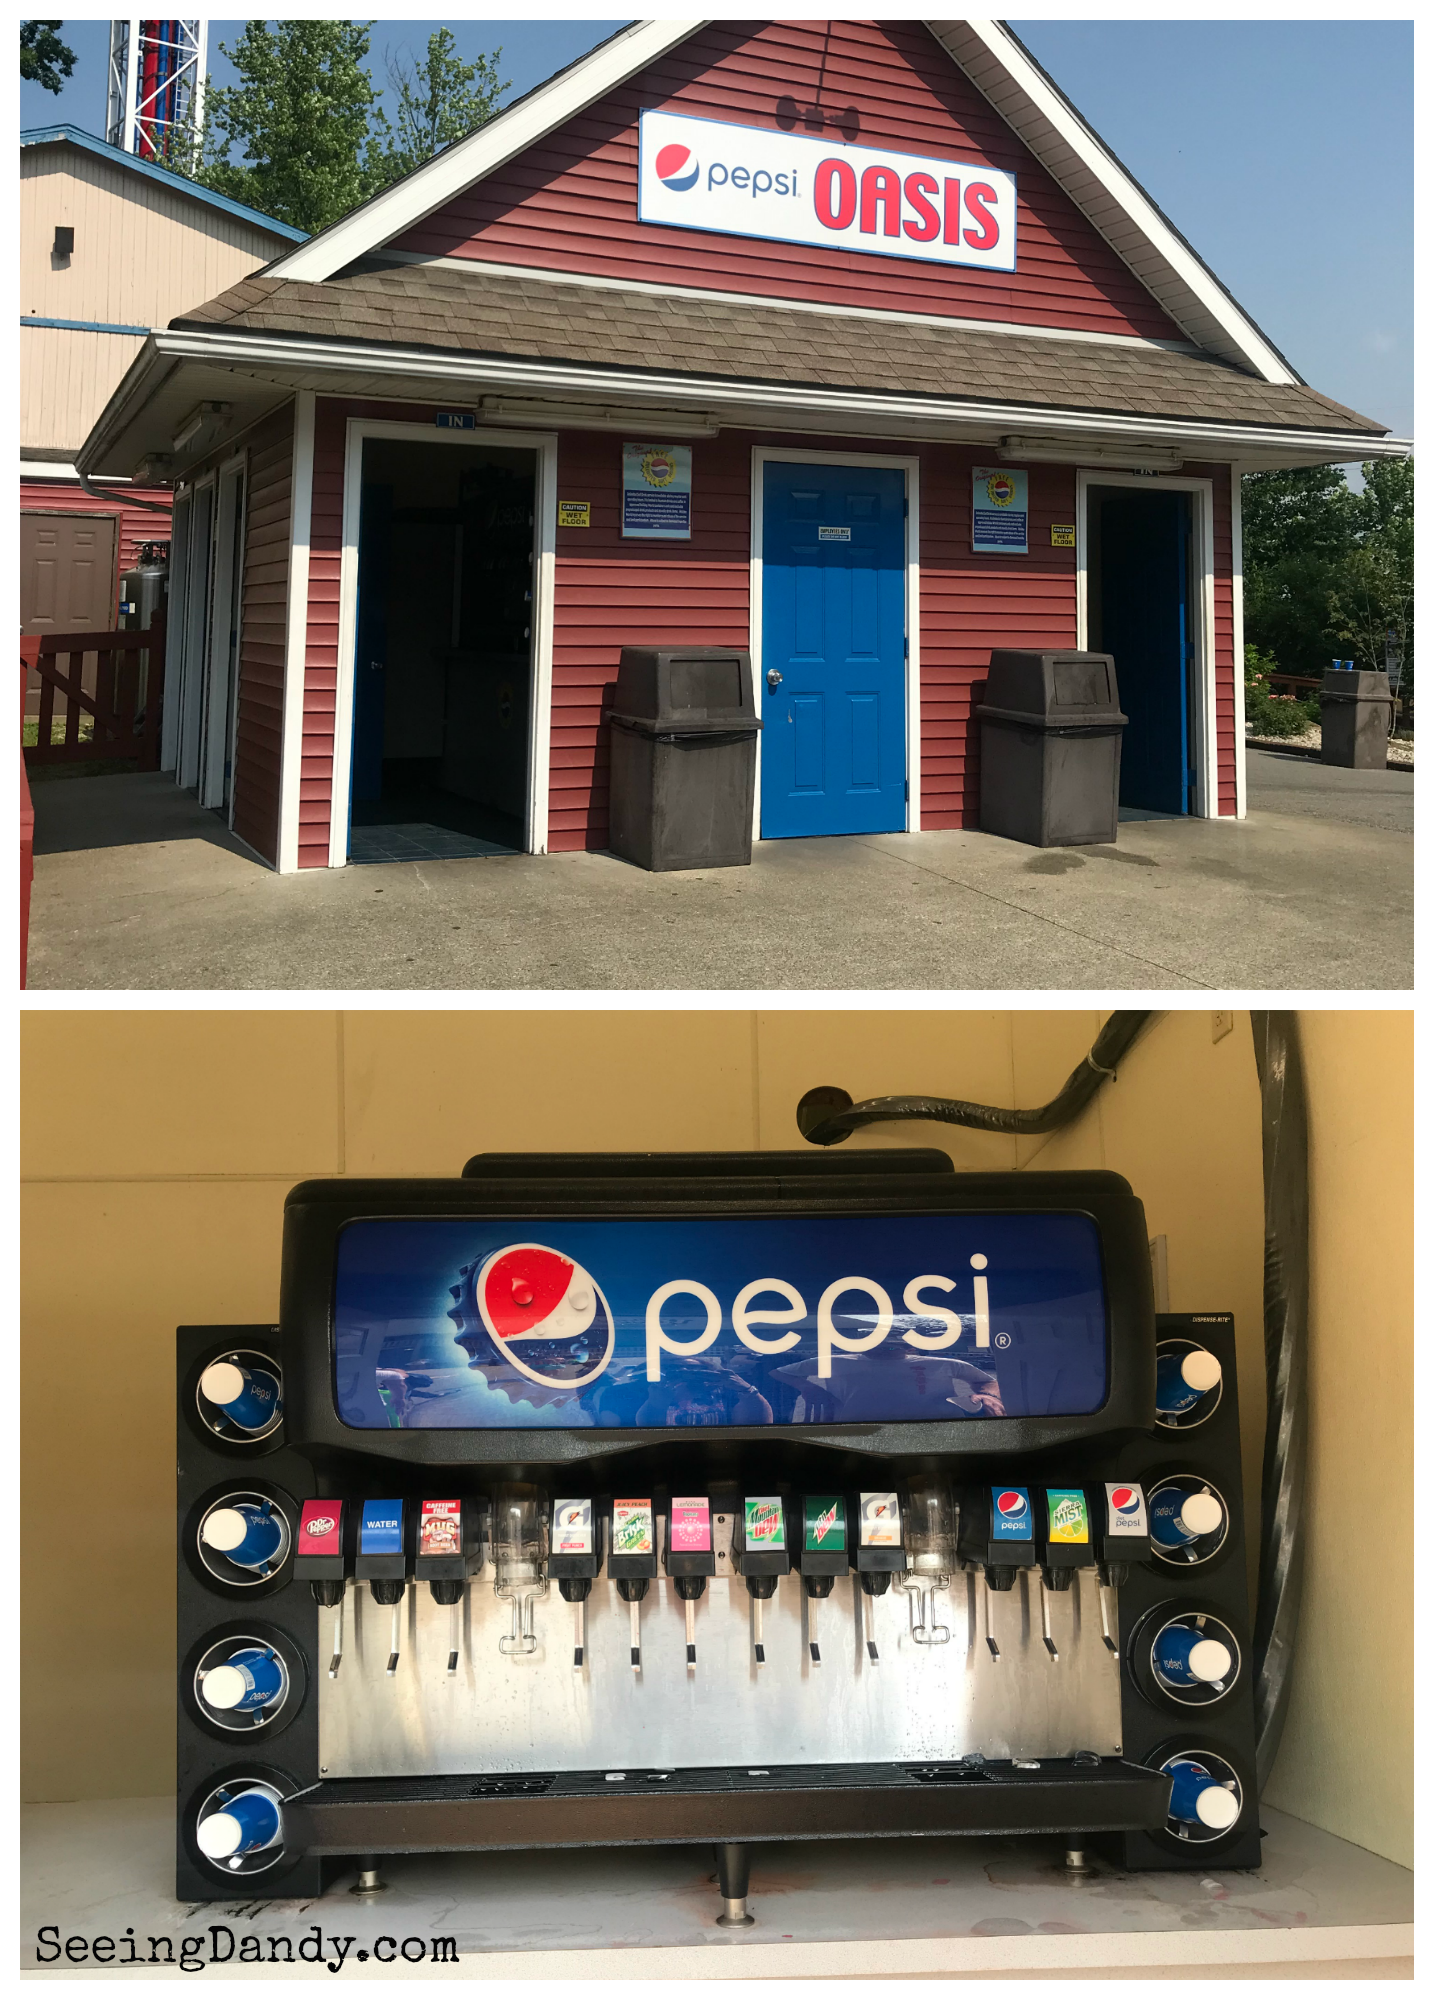 Holiday World Pepsi Oasis free soft drinks.